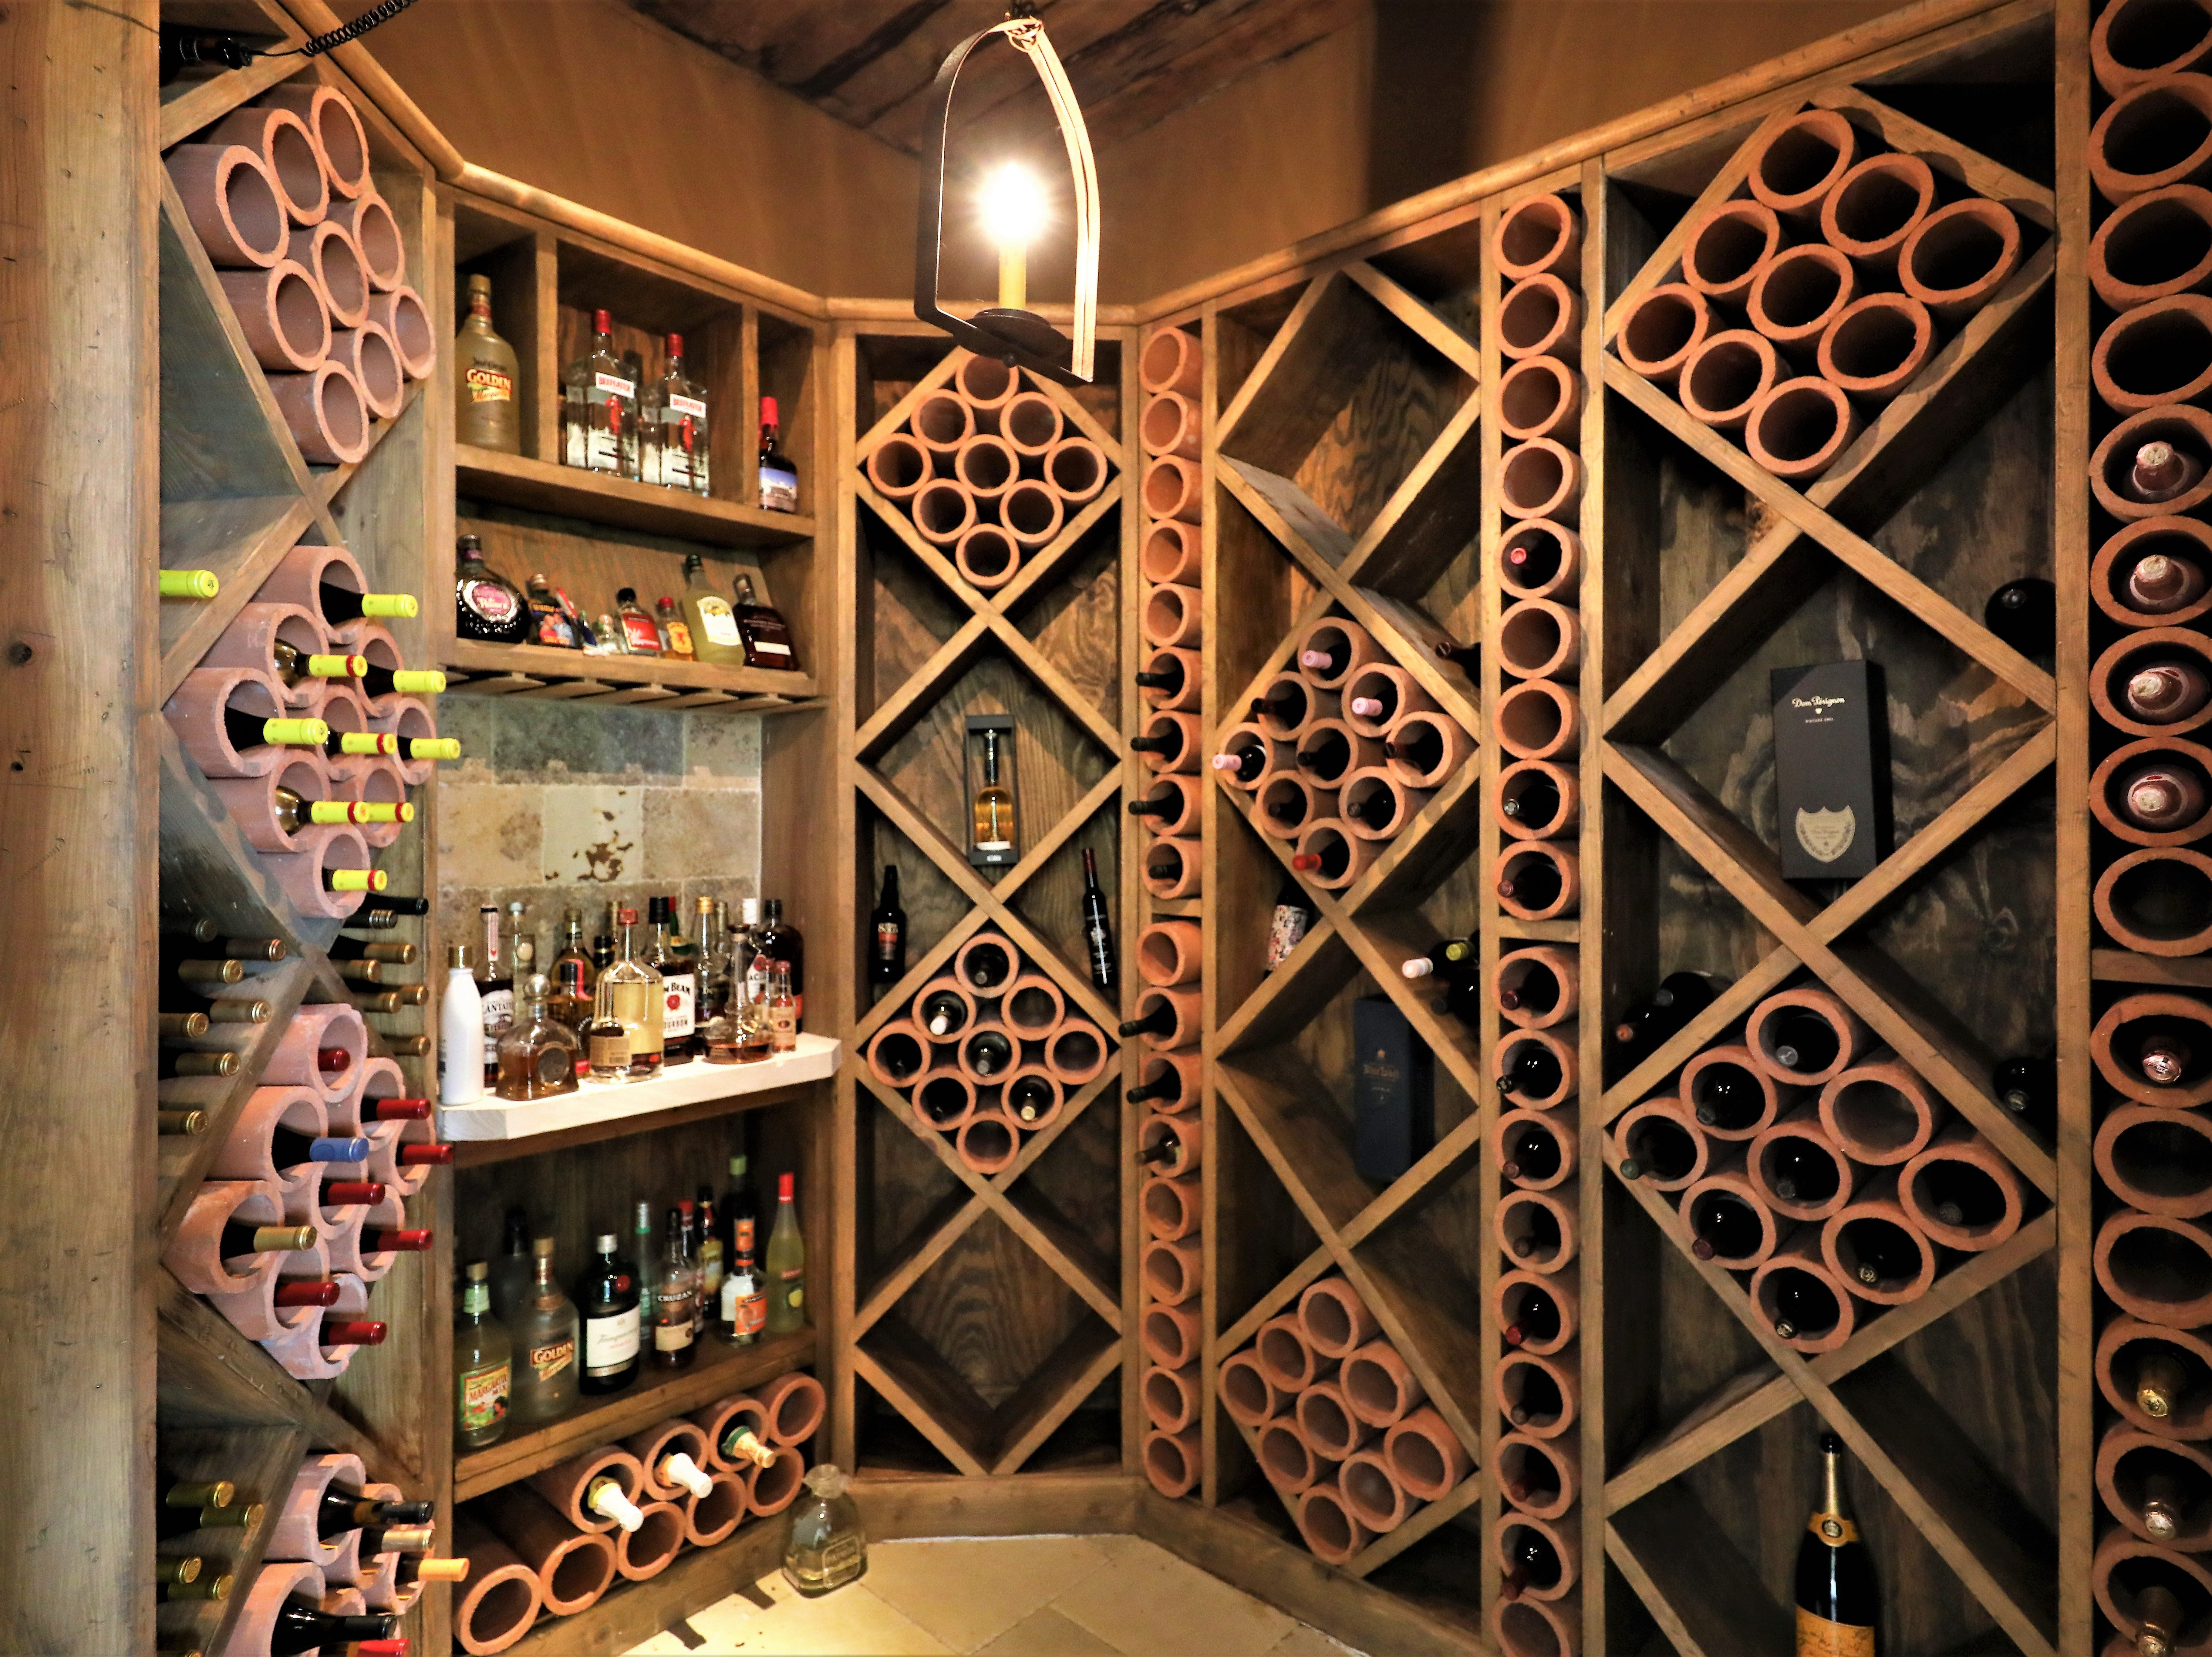 There's also a wine cellar in the finished basement.